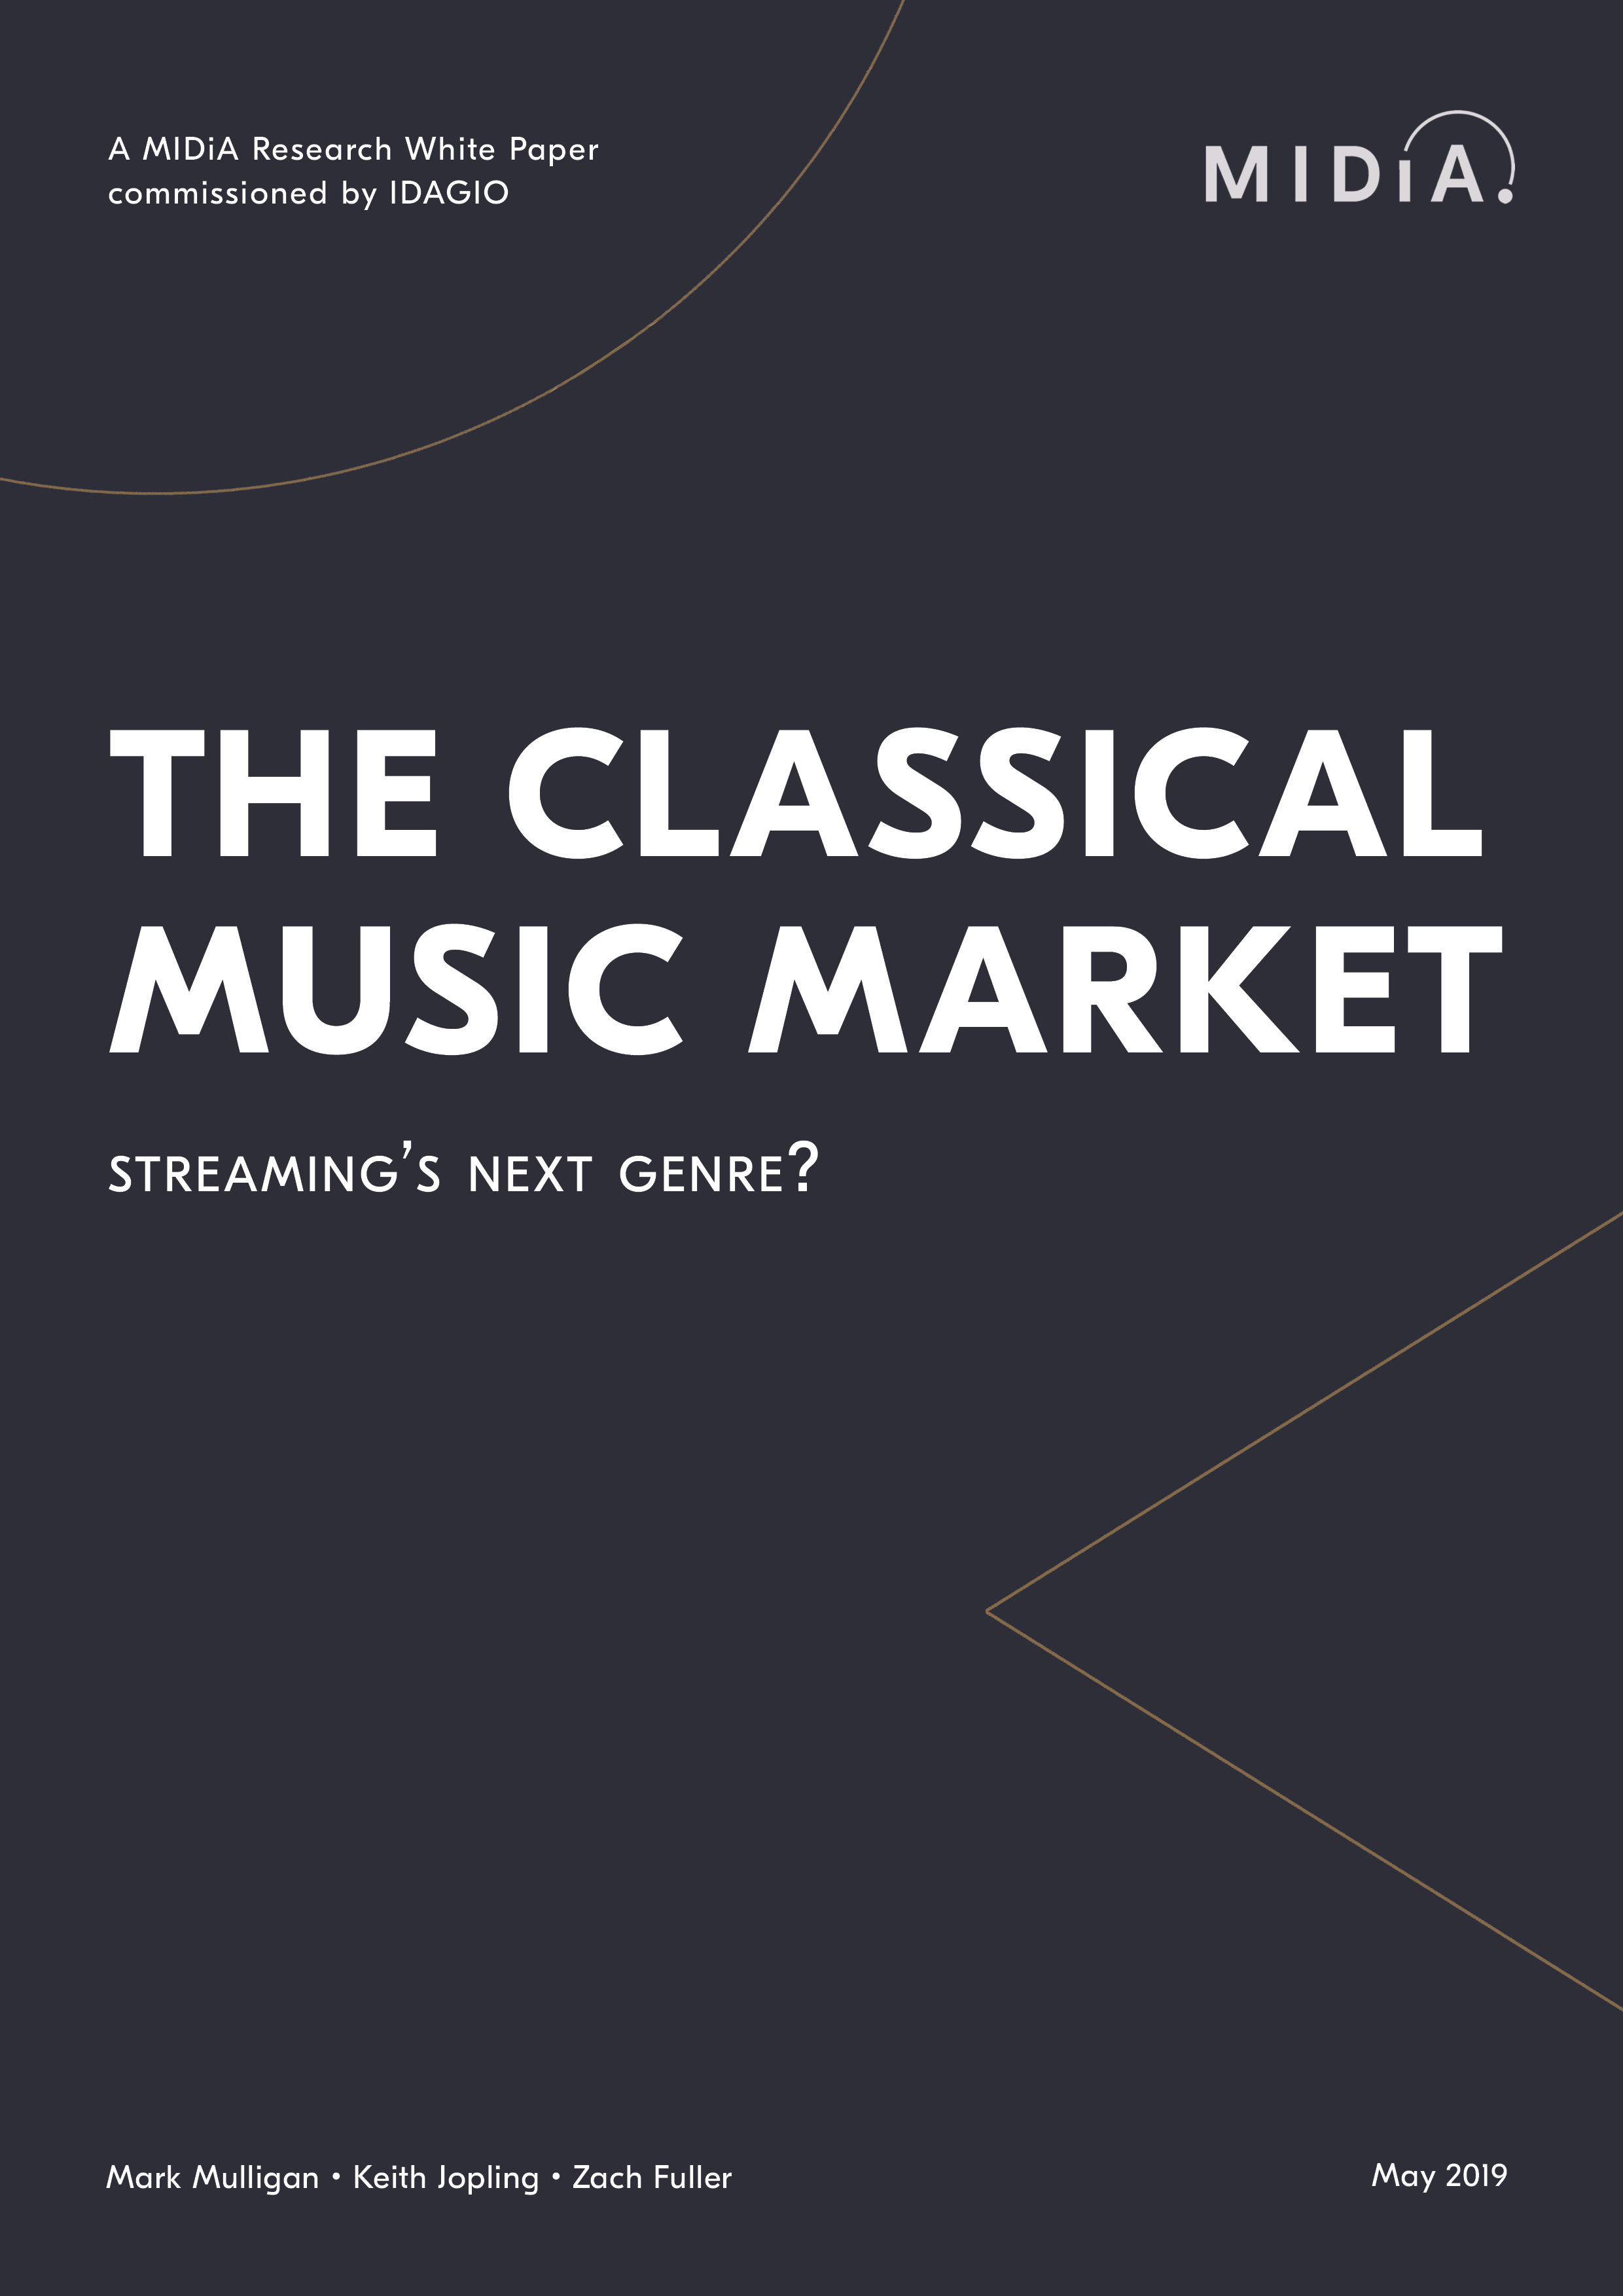 Cover image for The Classical Music Market - Streaming's Next Genre?